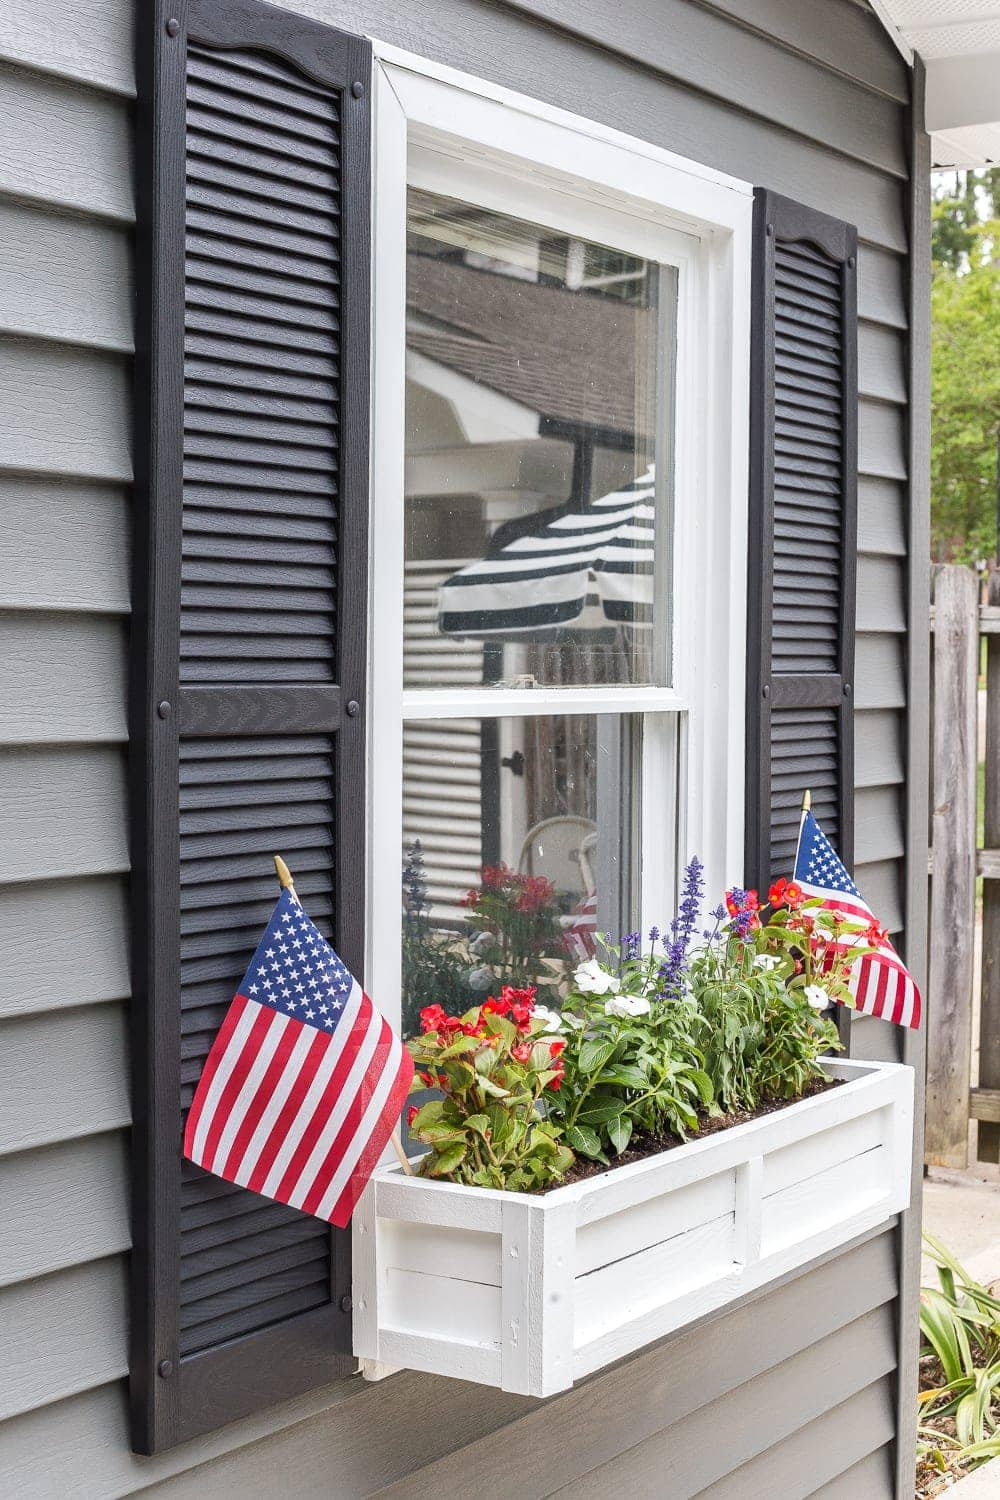 DIY window box using scrap wood with red, white, and blue patriotic flowers for July 4th